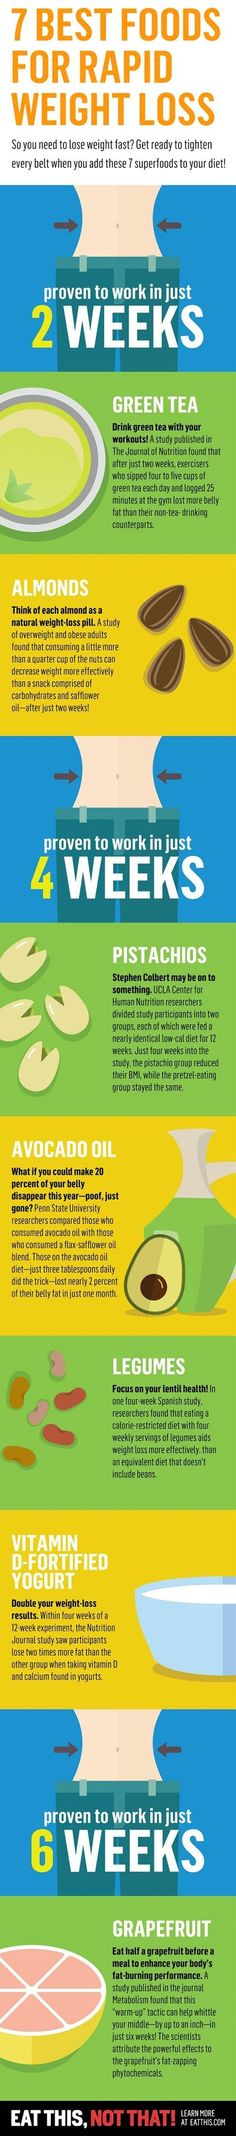 Healthy snack ideas to lose weight photo 5